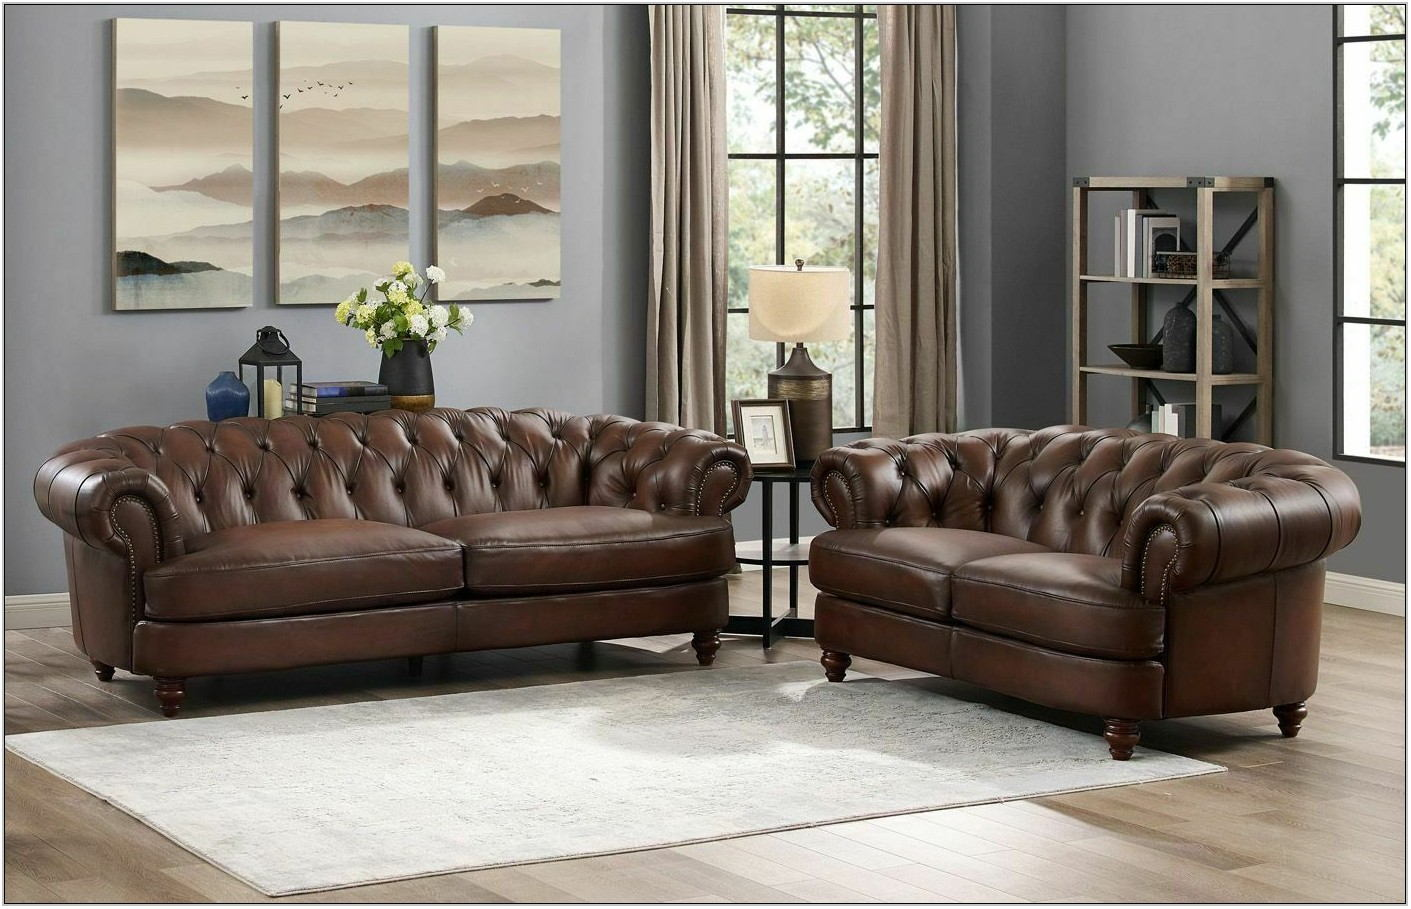 Loveseat Living Room Set